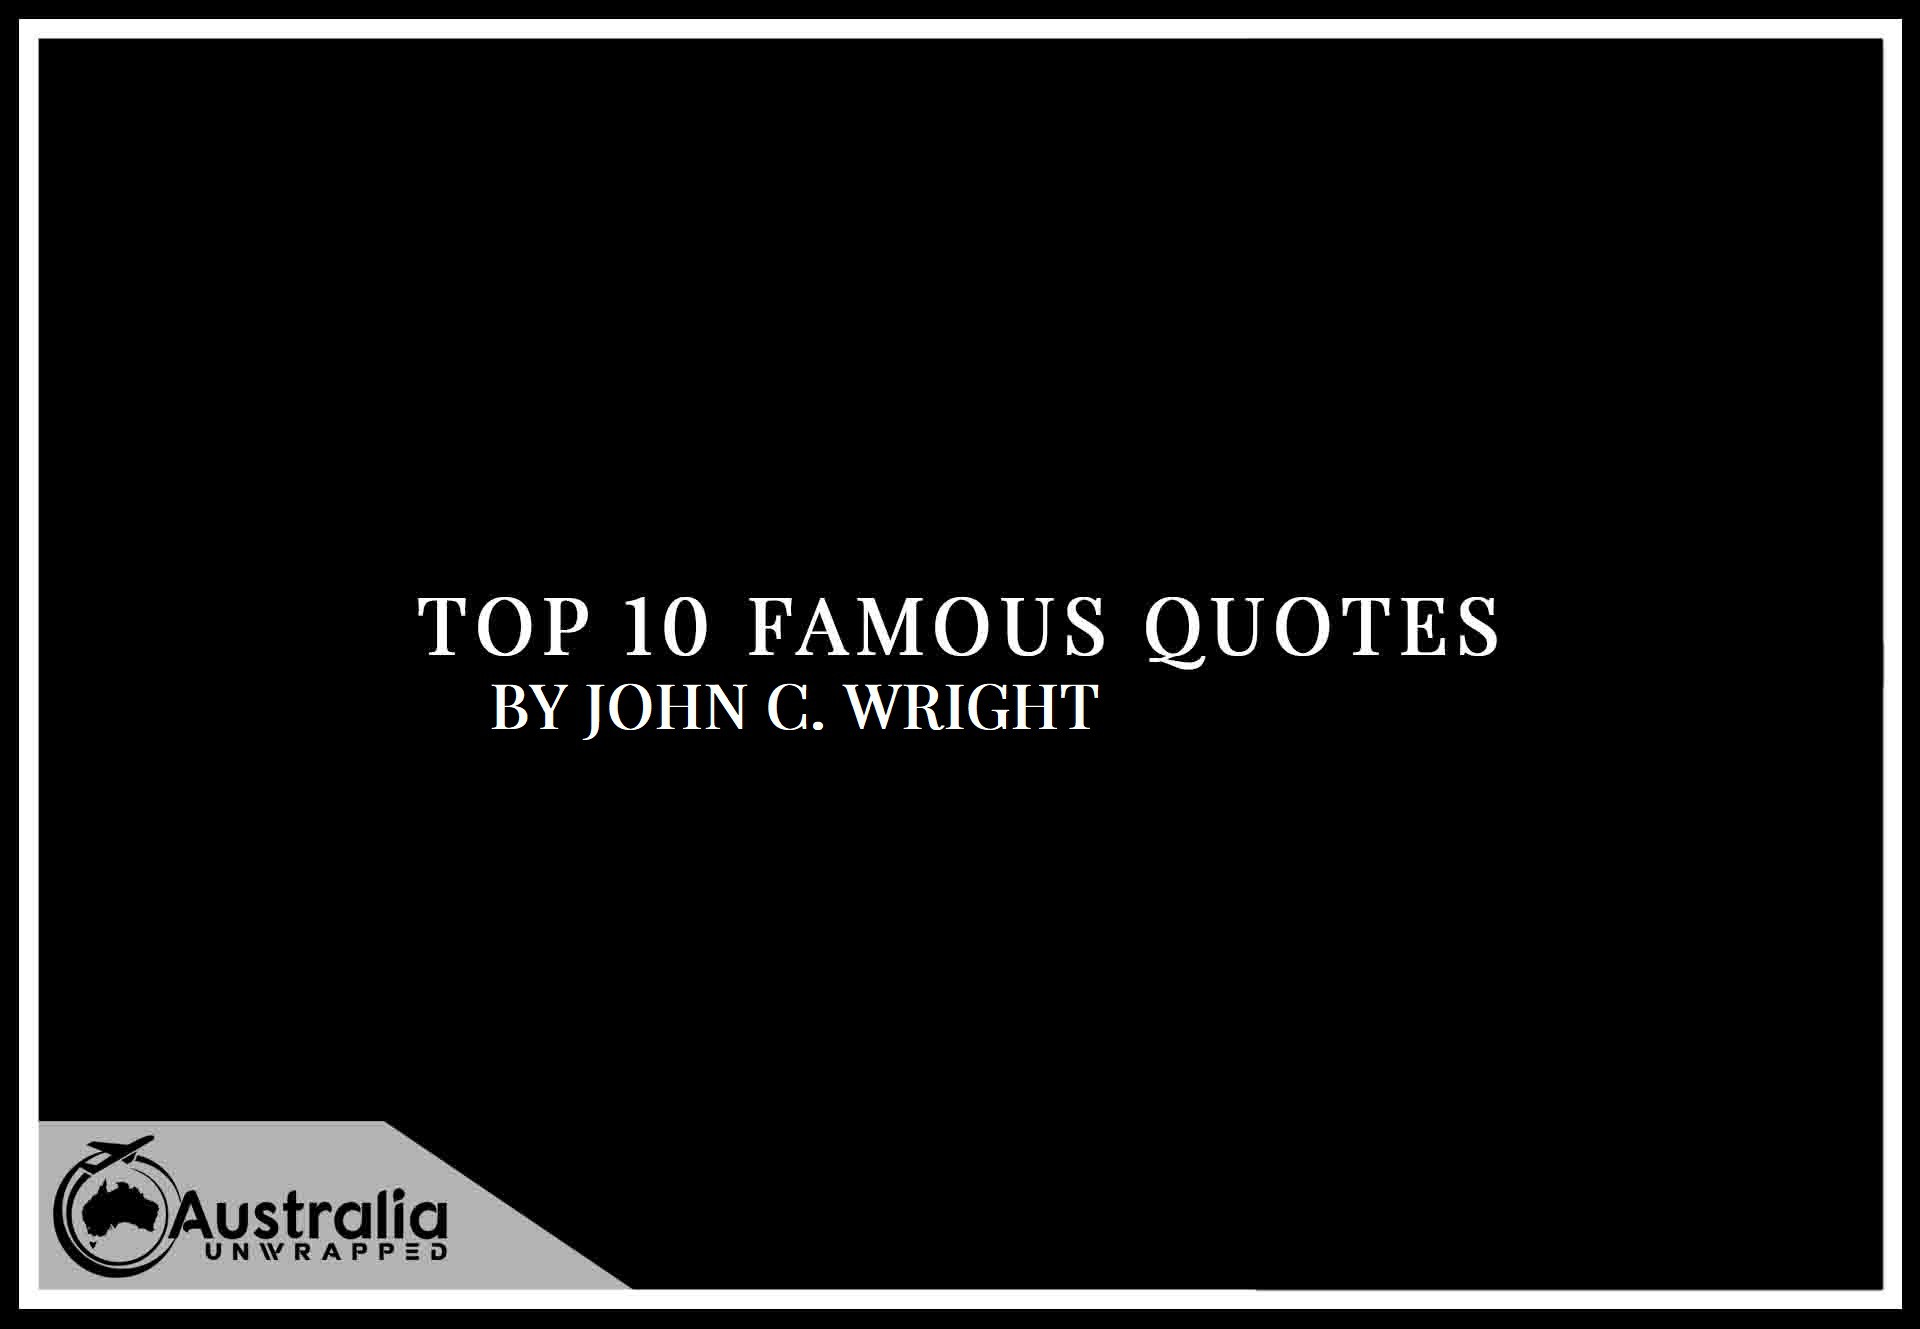 Top 10 Famous Quotes by Author John C Wright